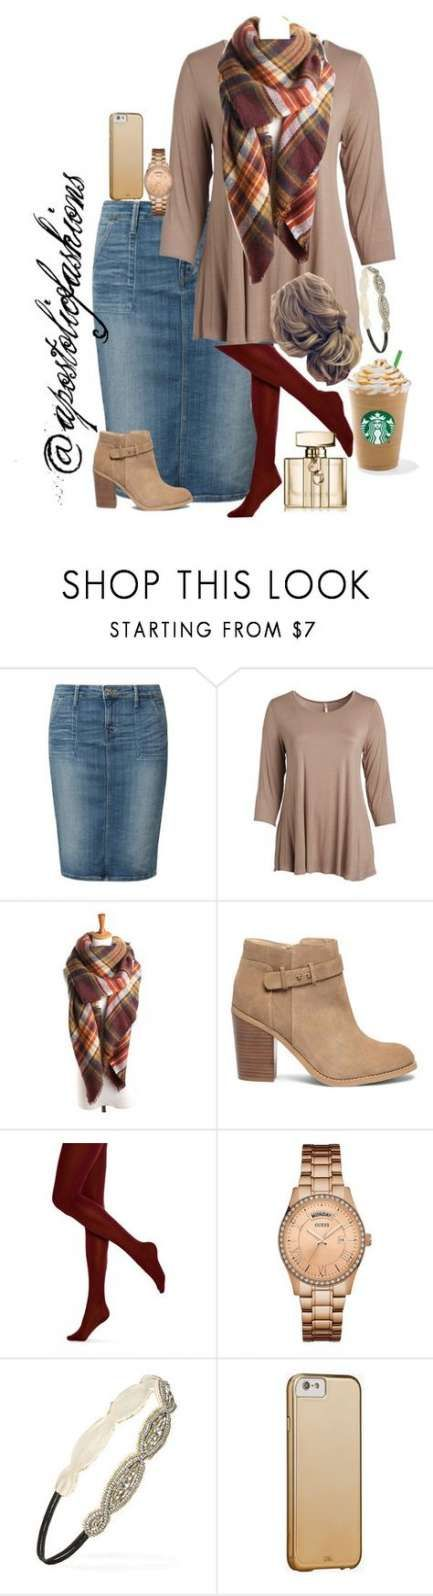 Skirt denim outfit plus size forever 21 64 ideas #churchoutfitfall